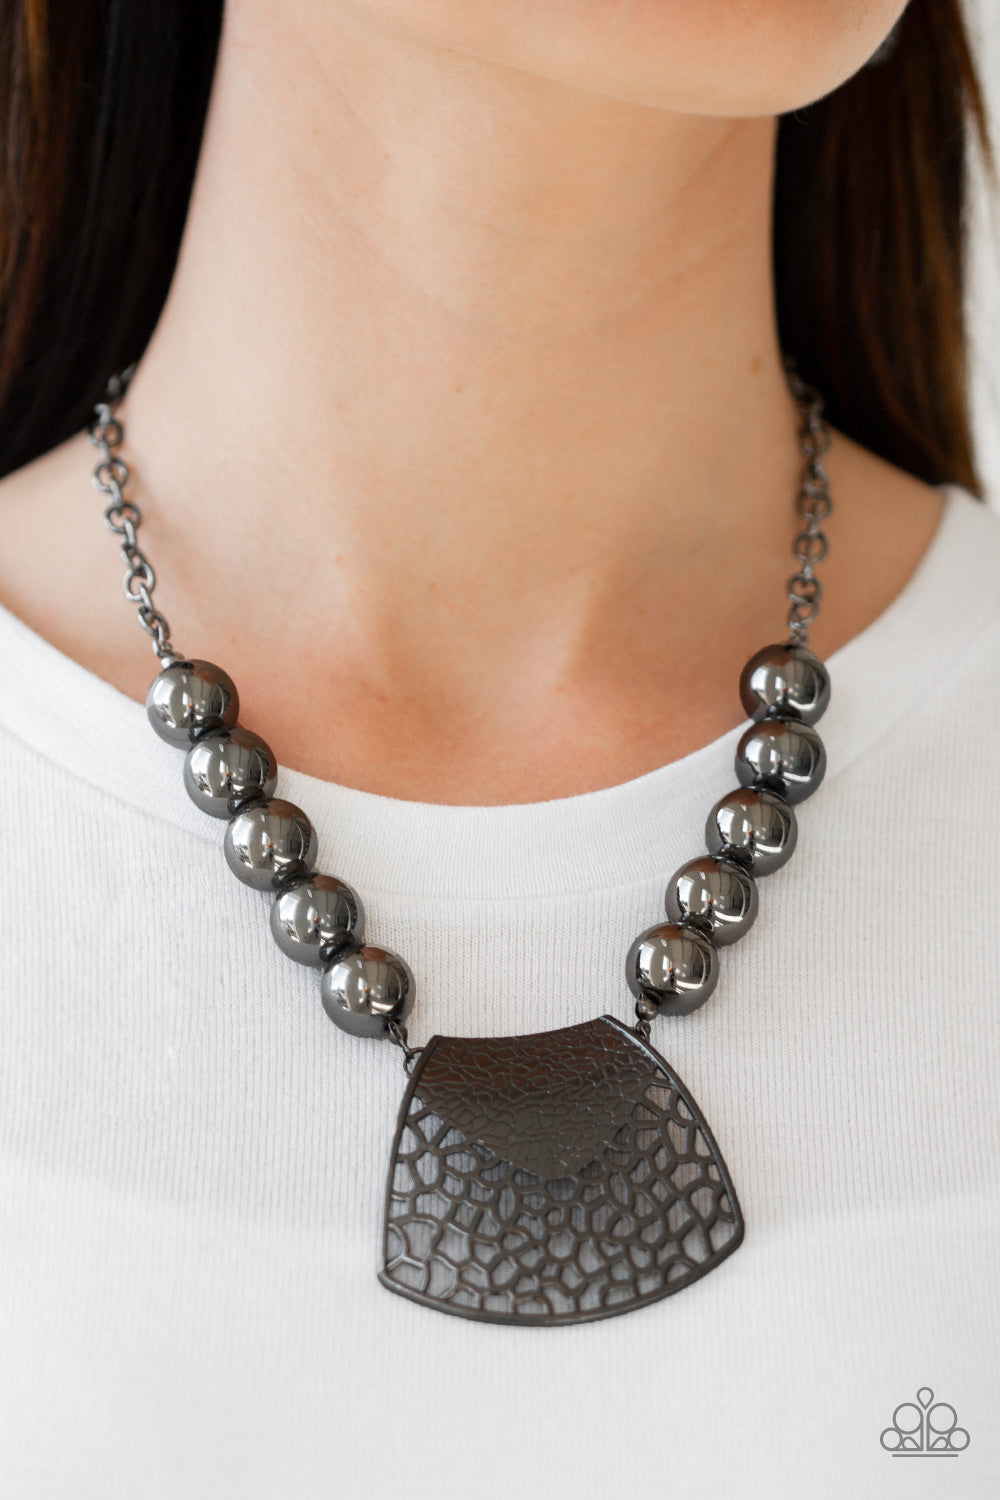 Paparazzi - Large and In Charge - Black Necklace Set - Classy Jewels by Linda